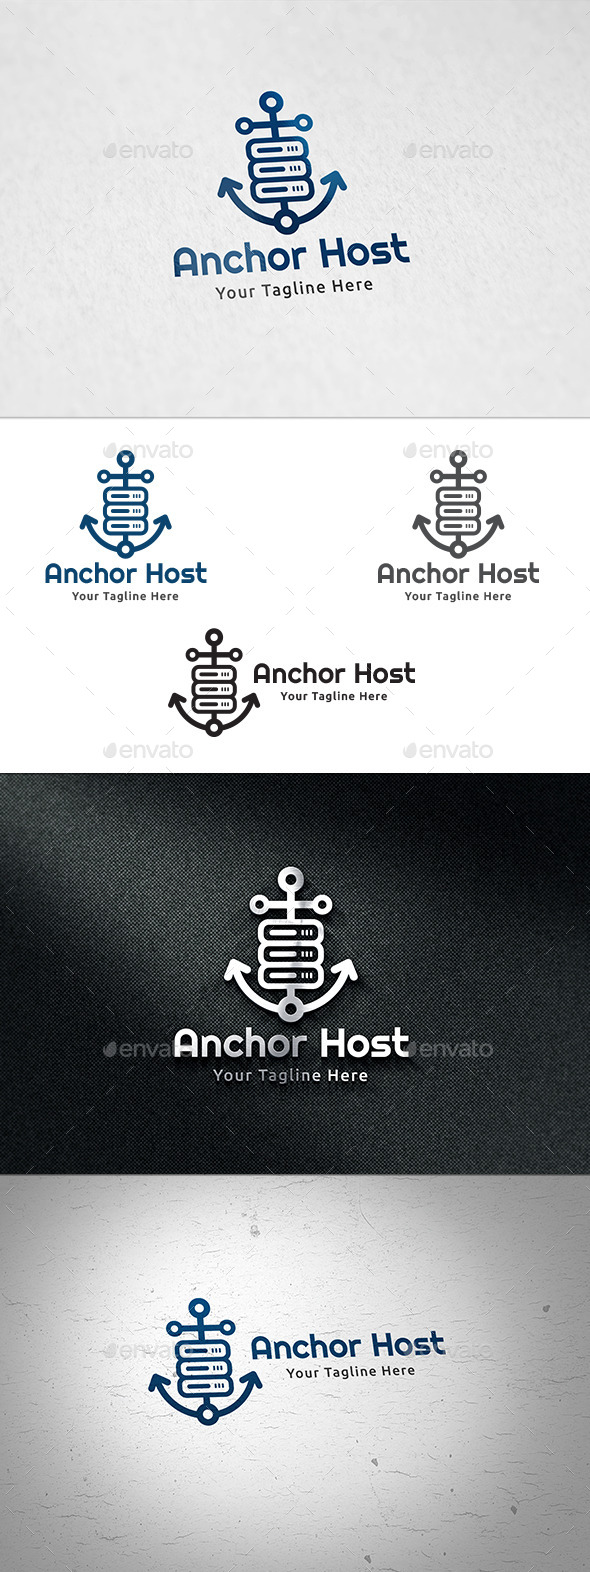 Anchor Host - Logo Template - Objects Logo Templates